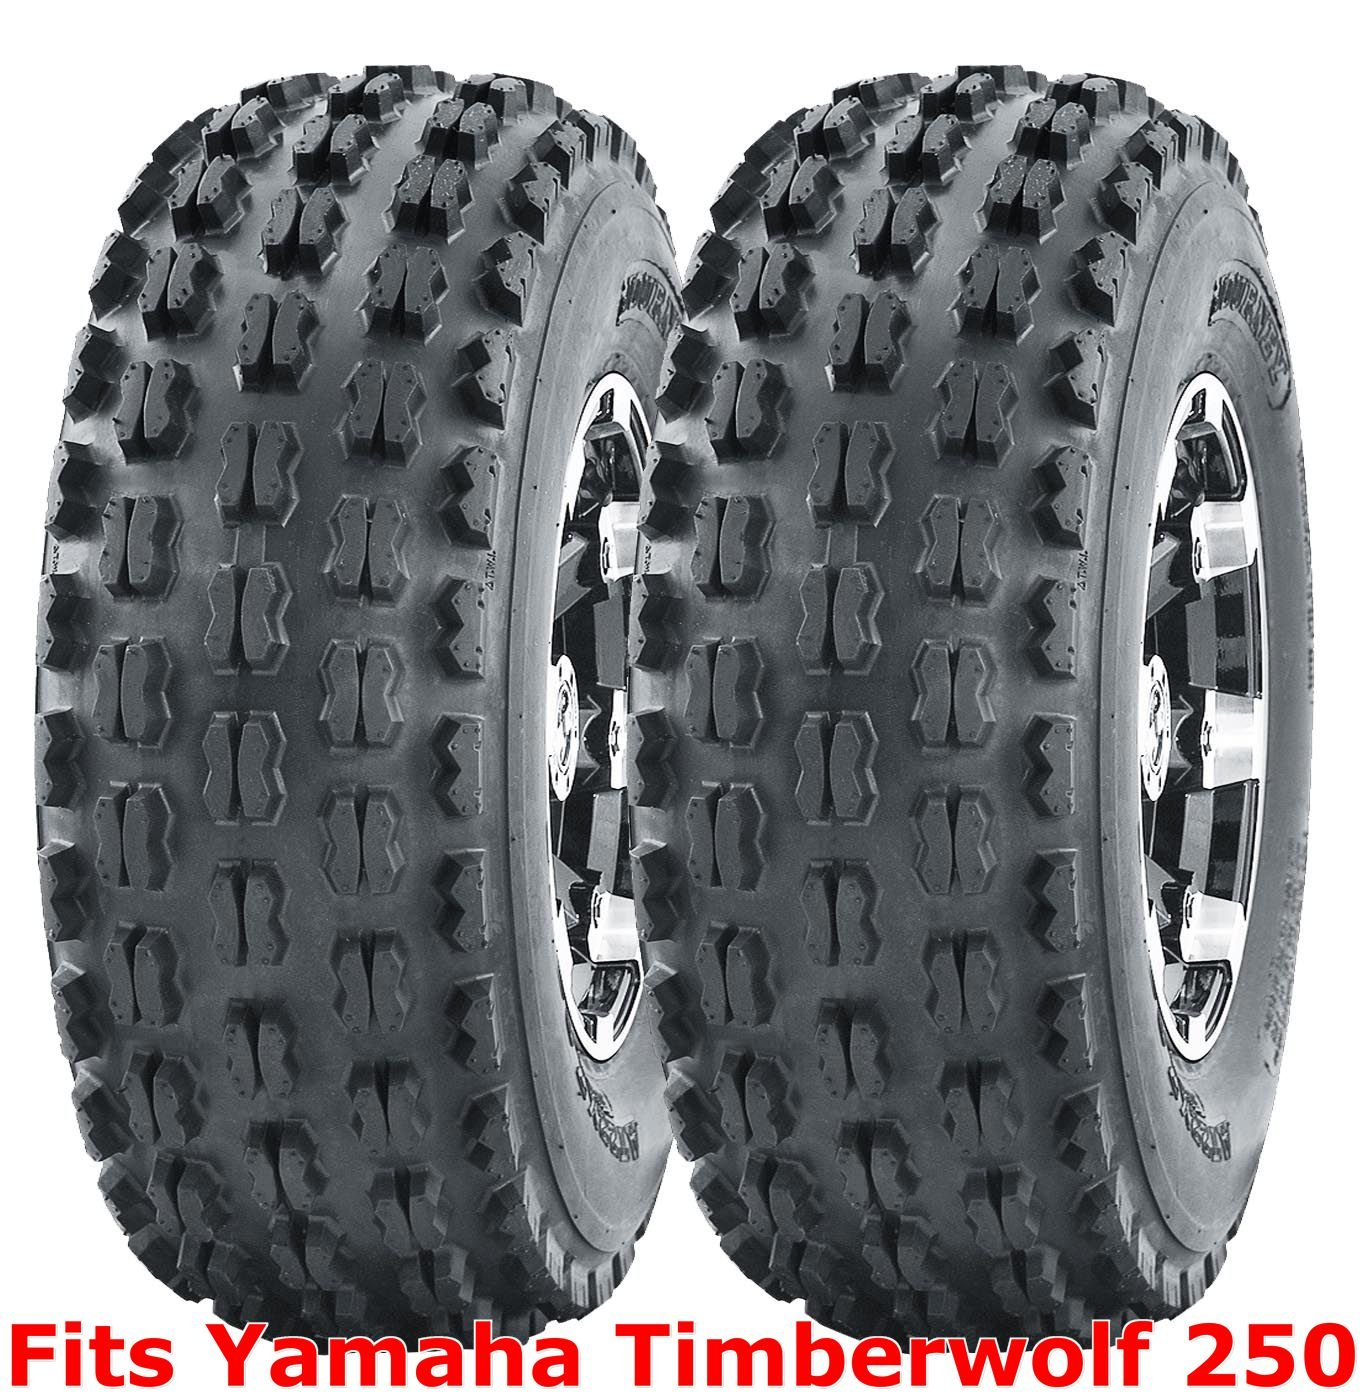 1996 Yamaha Timberwolf Atv Yfb250 Wiring Diagram Front Tires Set Wanda Racing Automotive 1368x1400